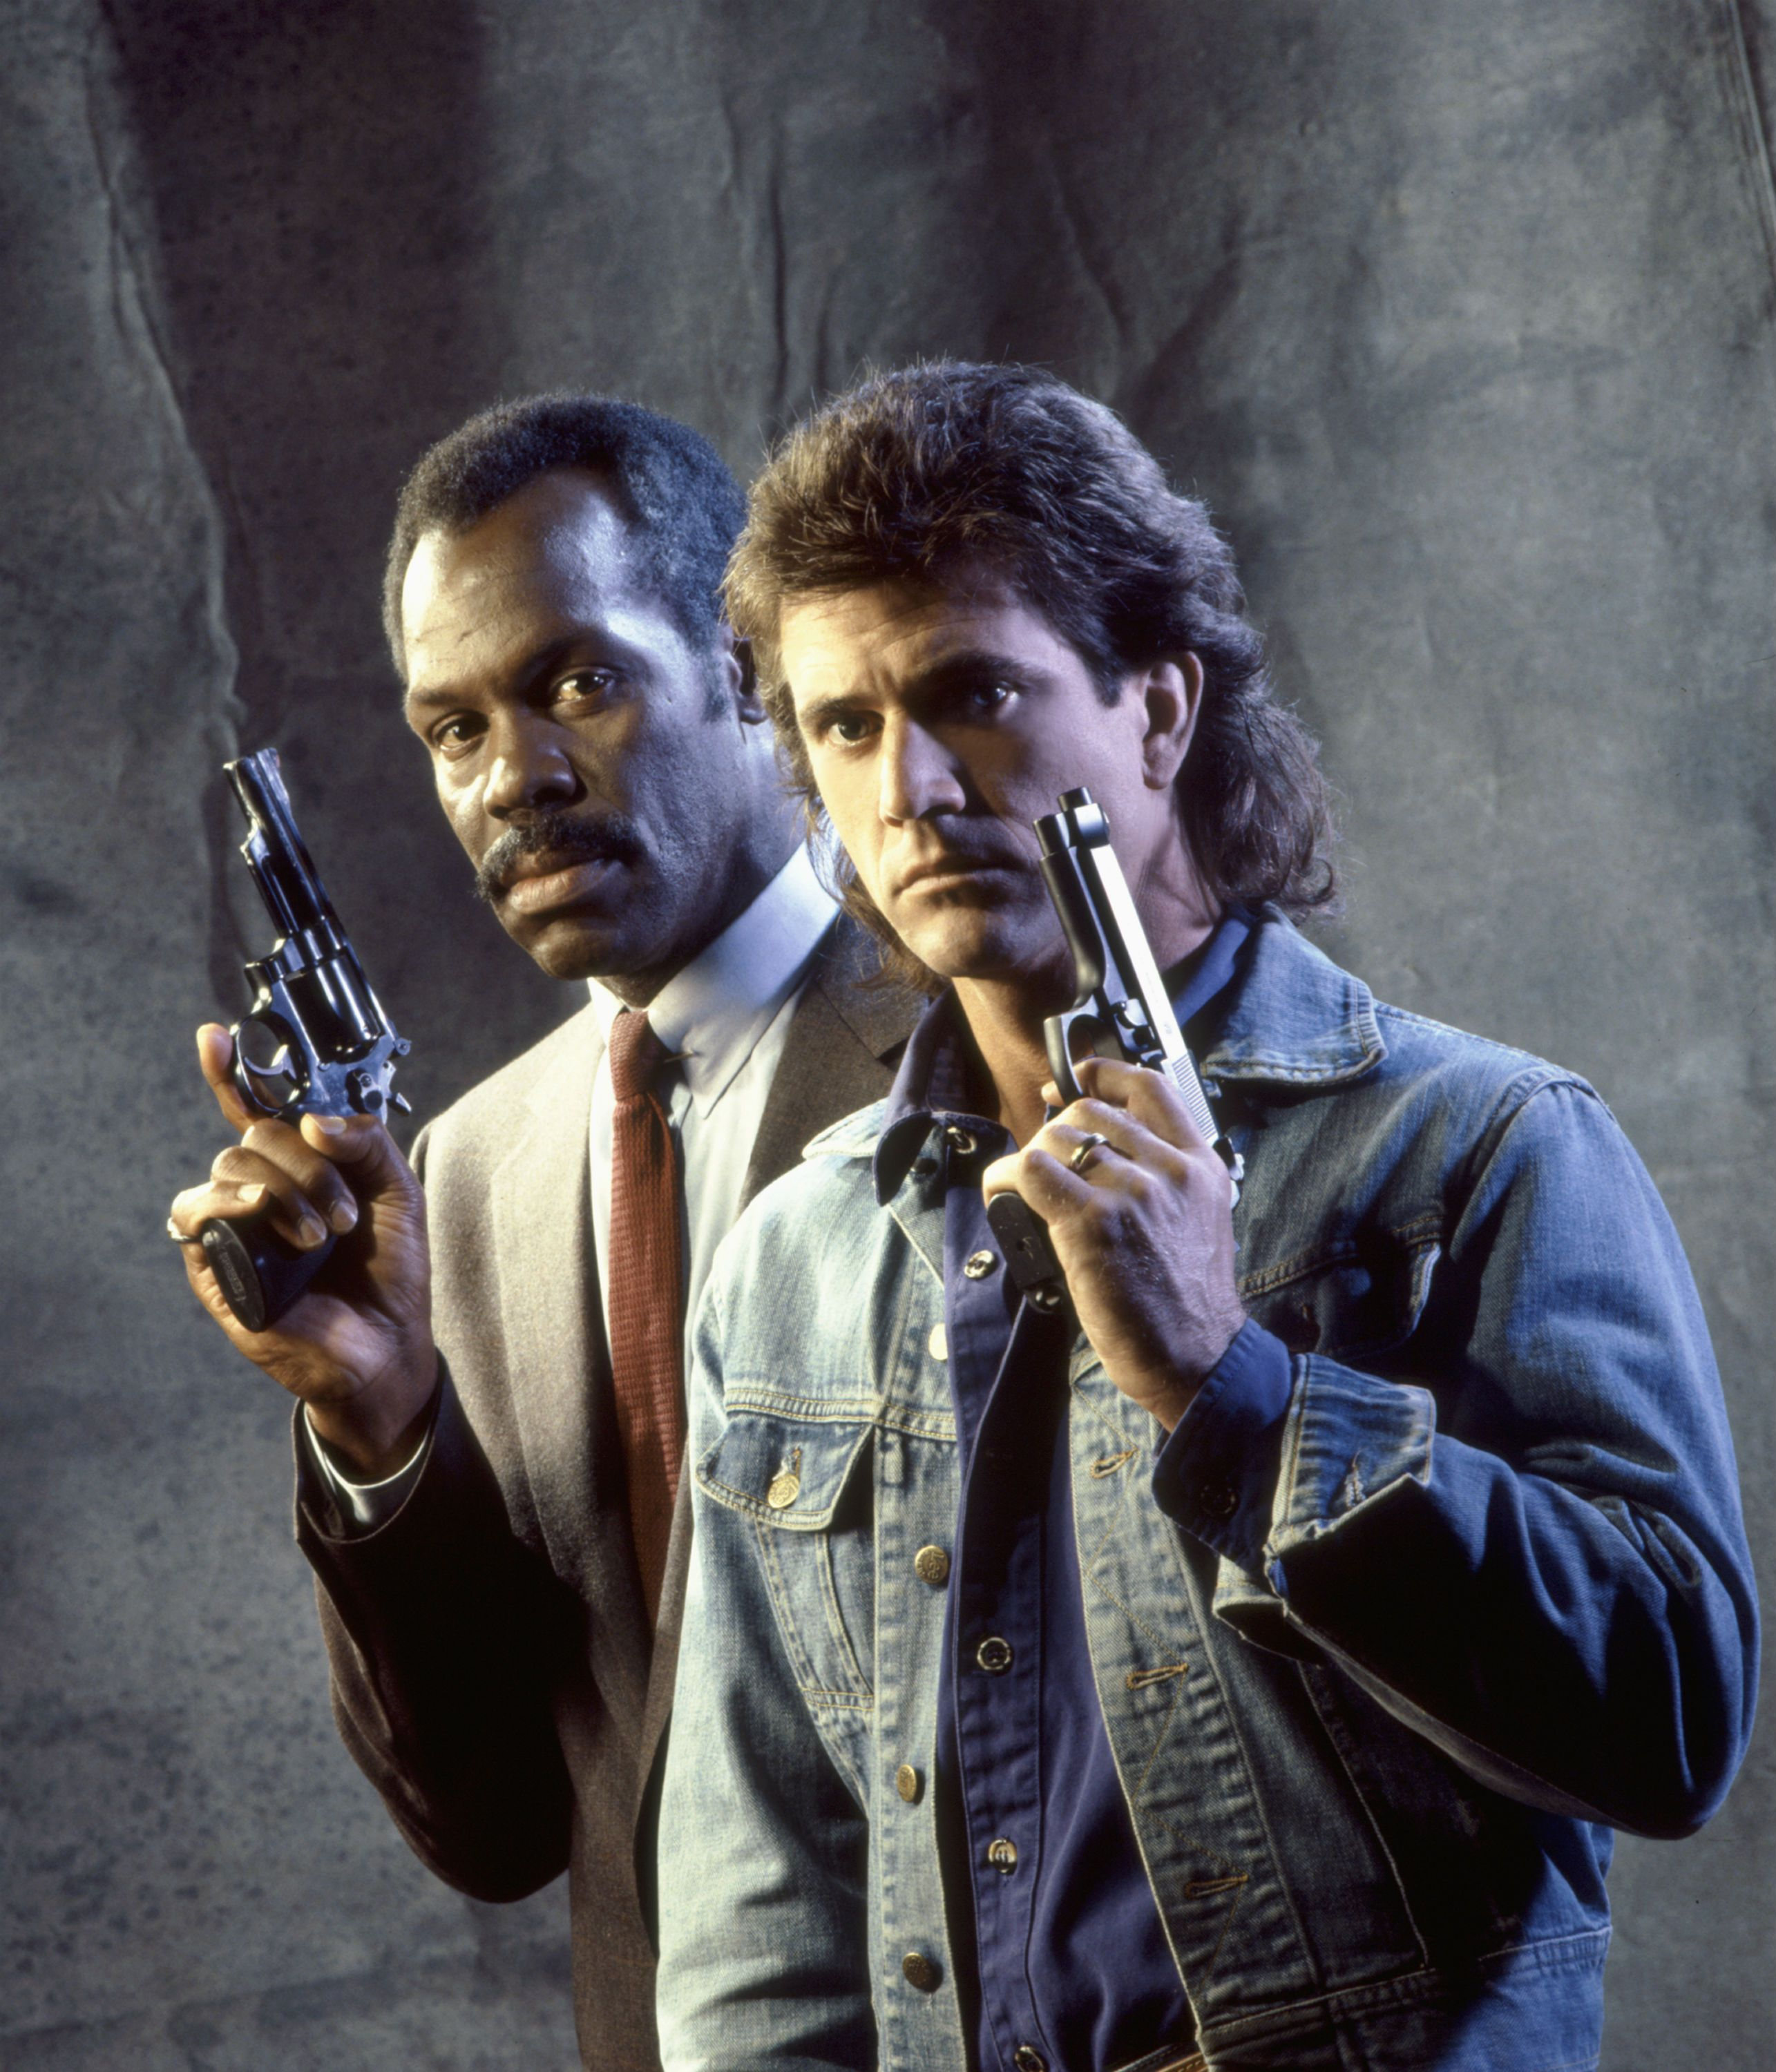 Lethal Weapon 5 in the works with original cast returning